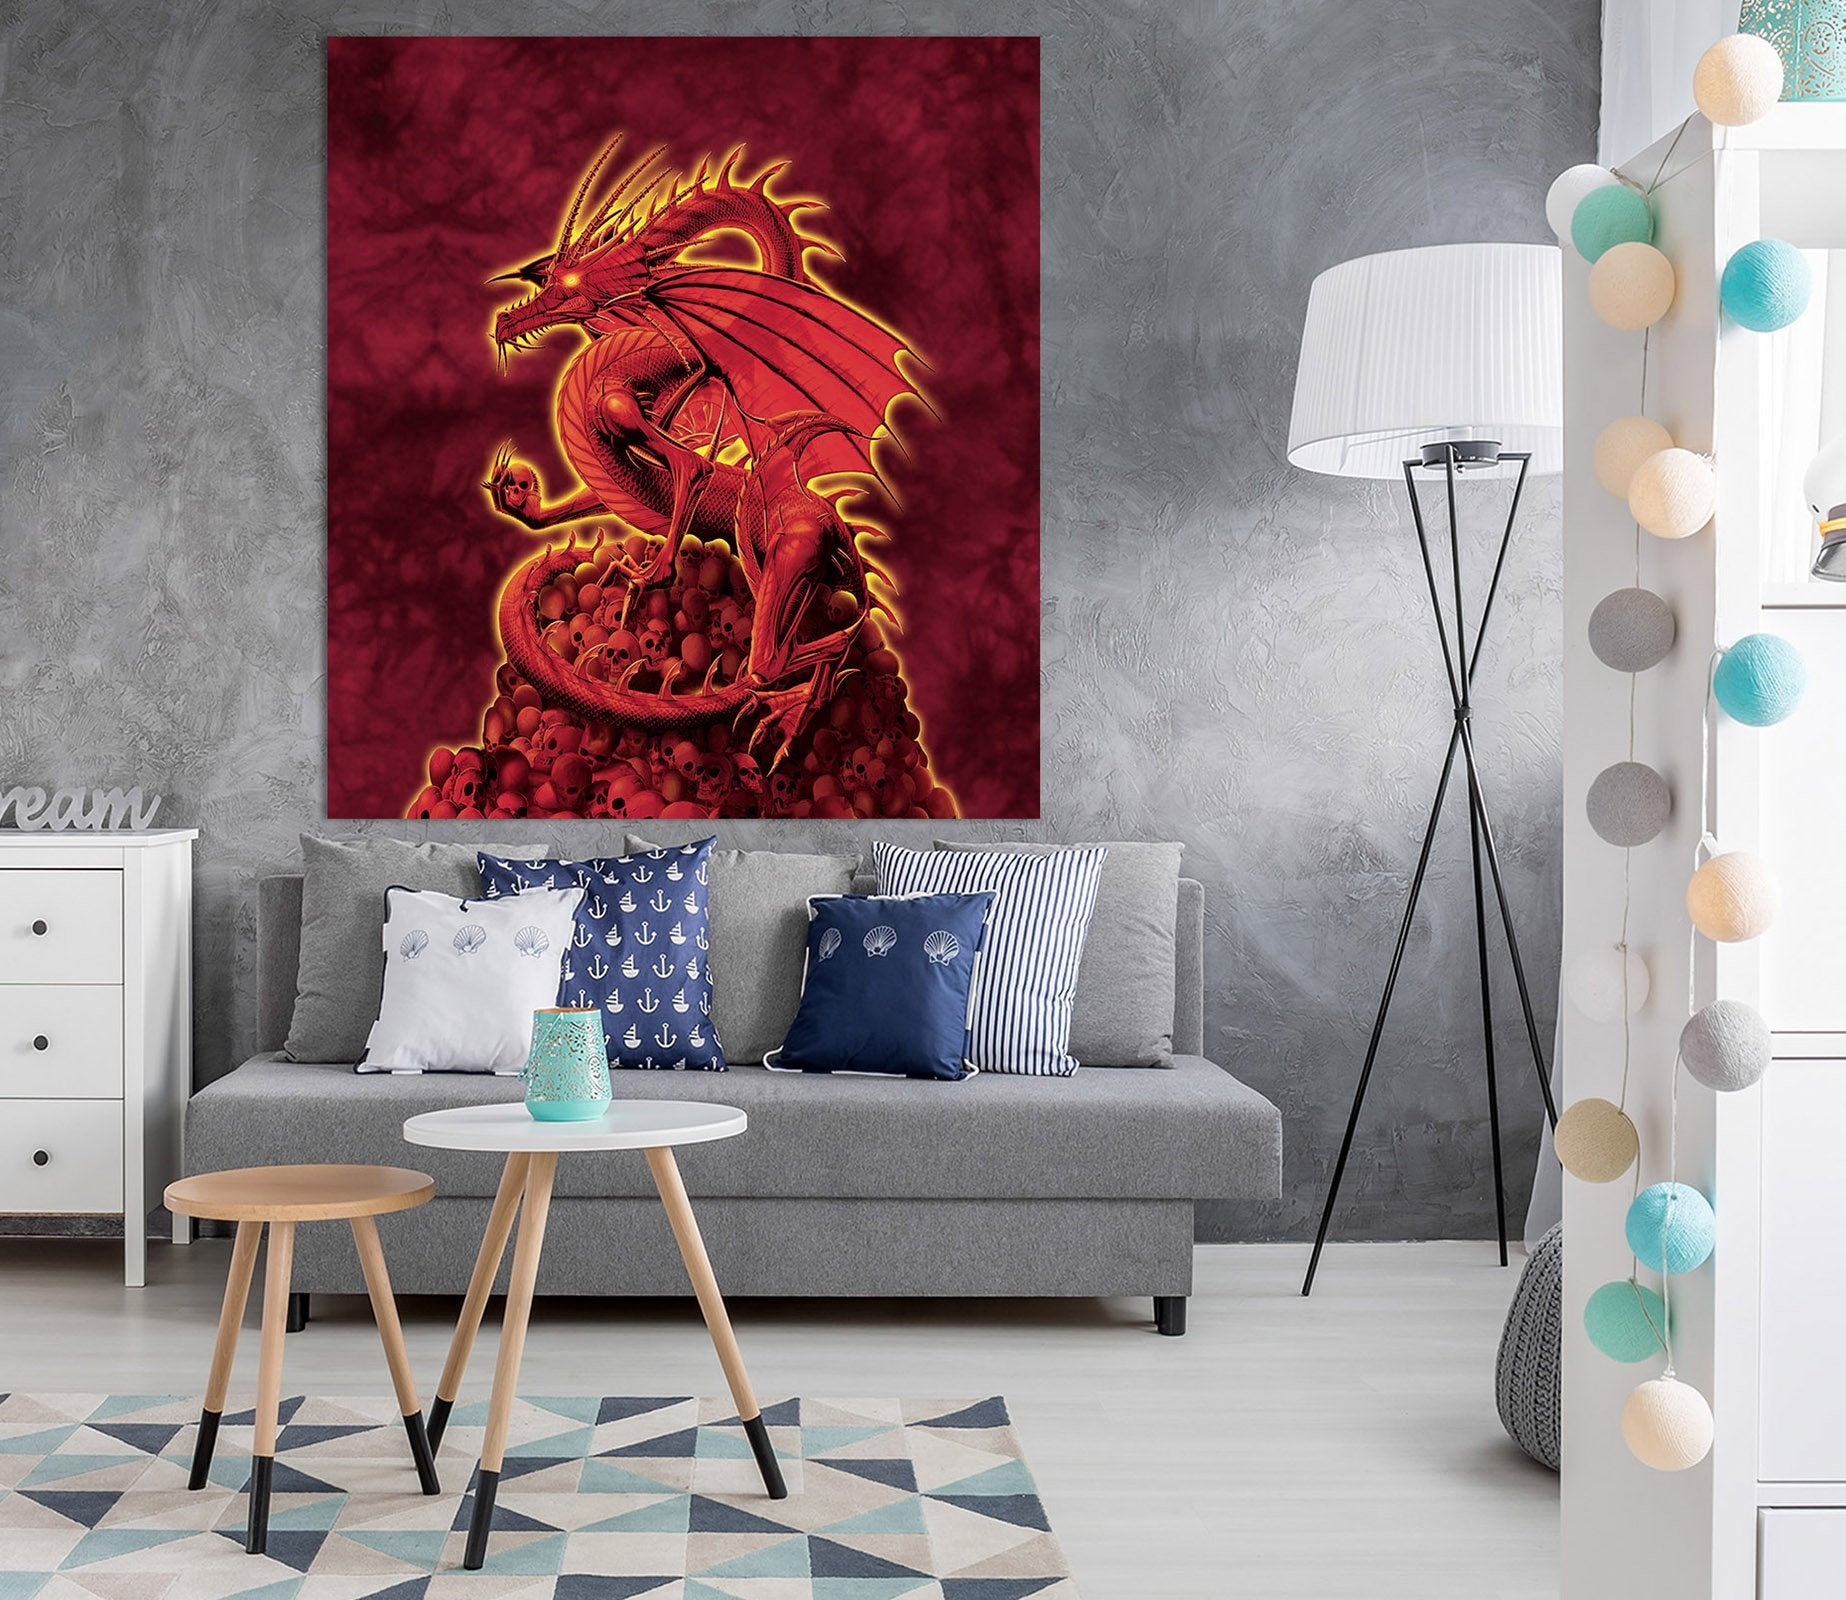 3D Abolisher Red Version 006 Vincent Hie Wall Sticker